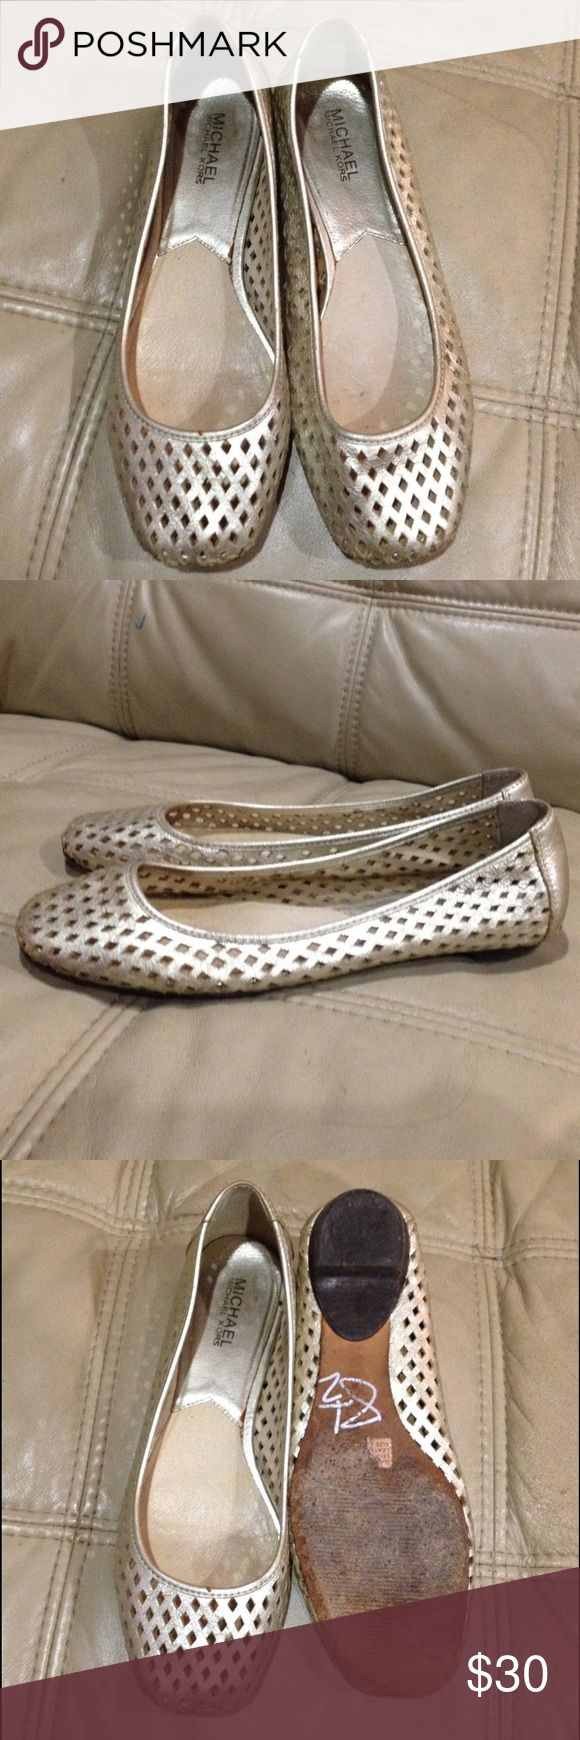 Michael Kors Gold Ballet Flats Shoes Good condition. Signs of wear on the bottom (see photo 3). Michael Kors Shoes Flats & Loafers